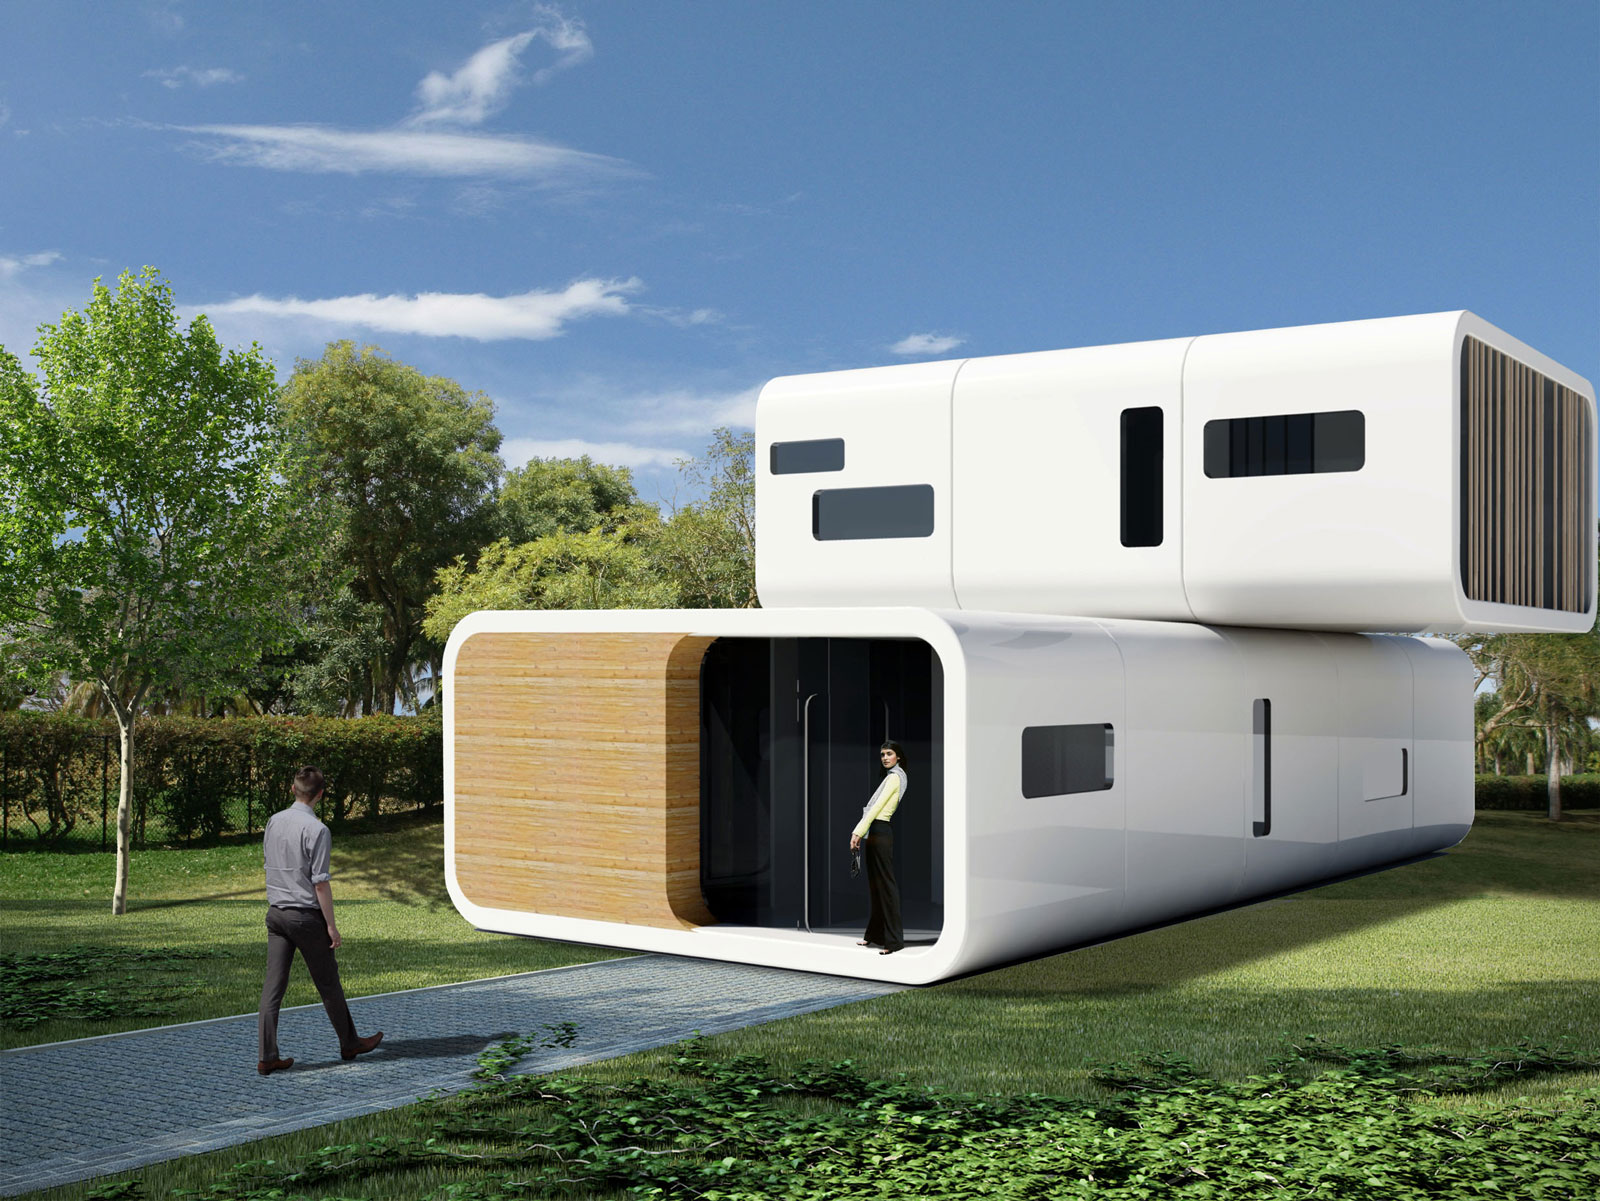 Prefab modular living units by coodo germany for Home architectures